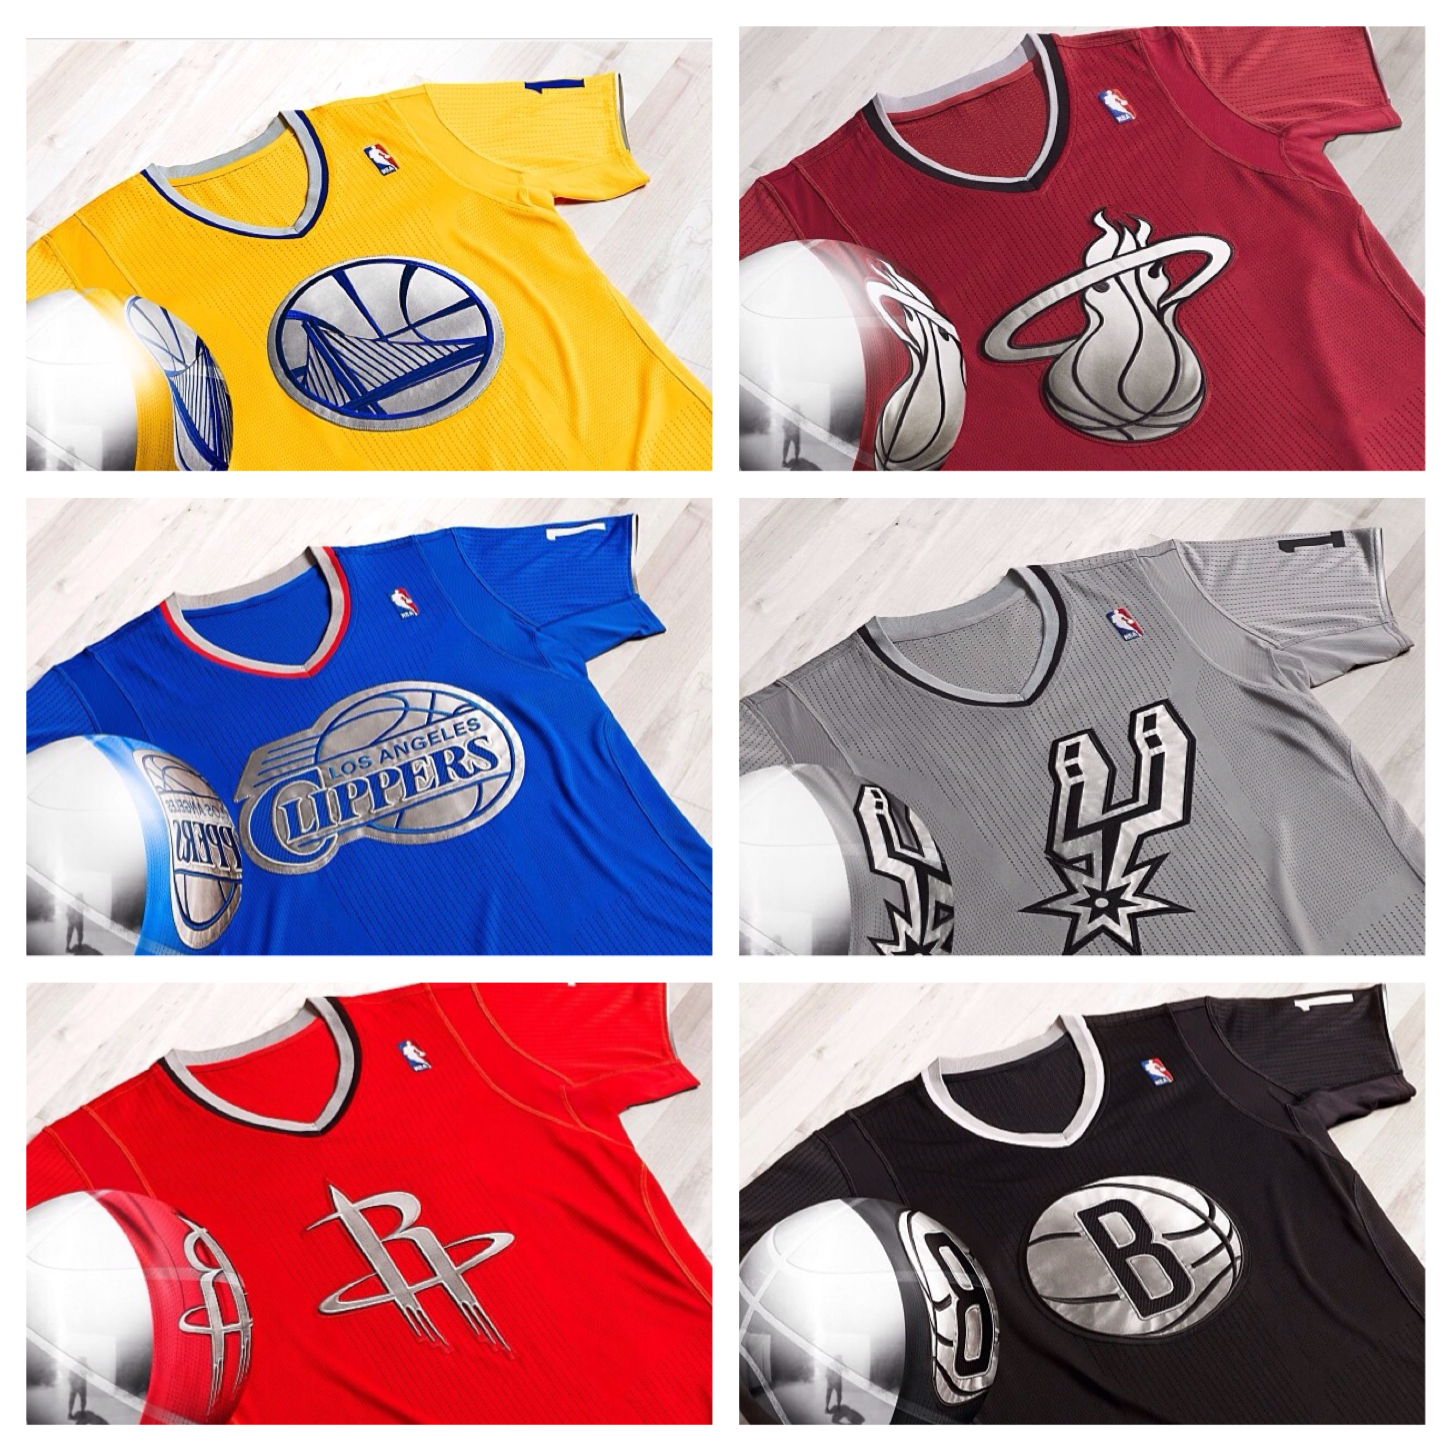 Finally, NBA's Christmas Uniforms Find Comfort And Joy